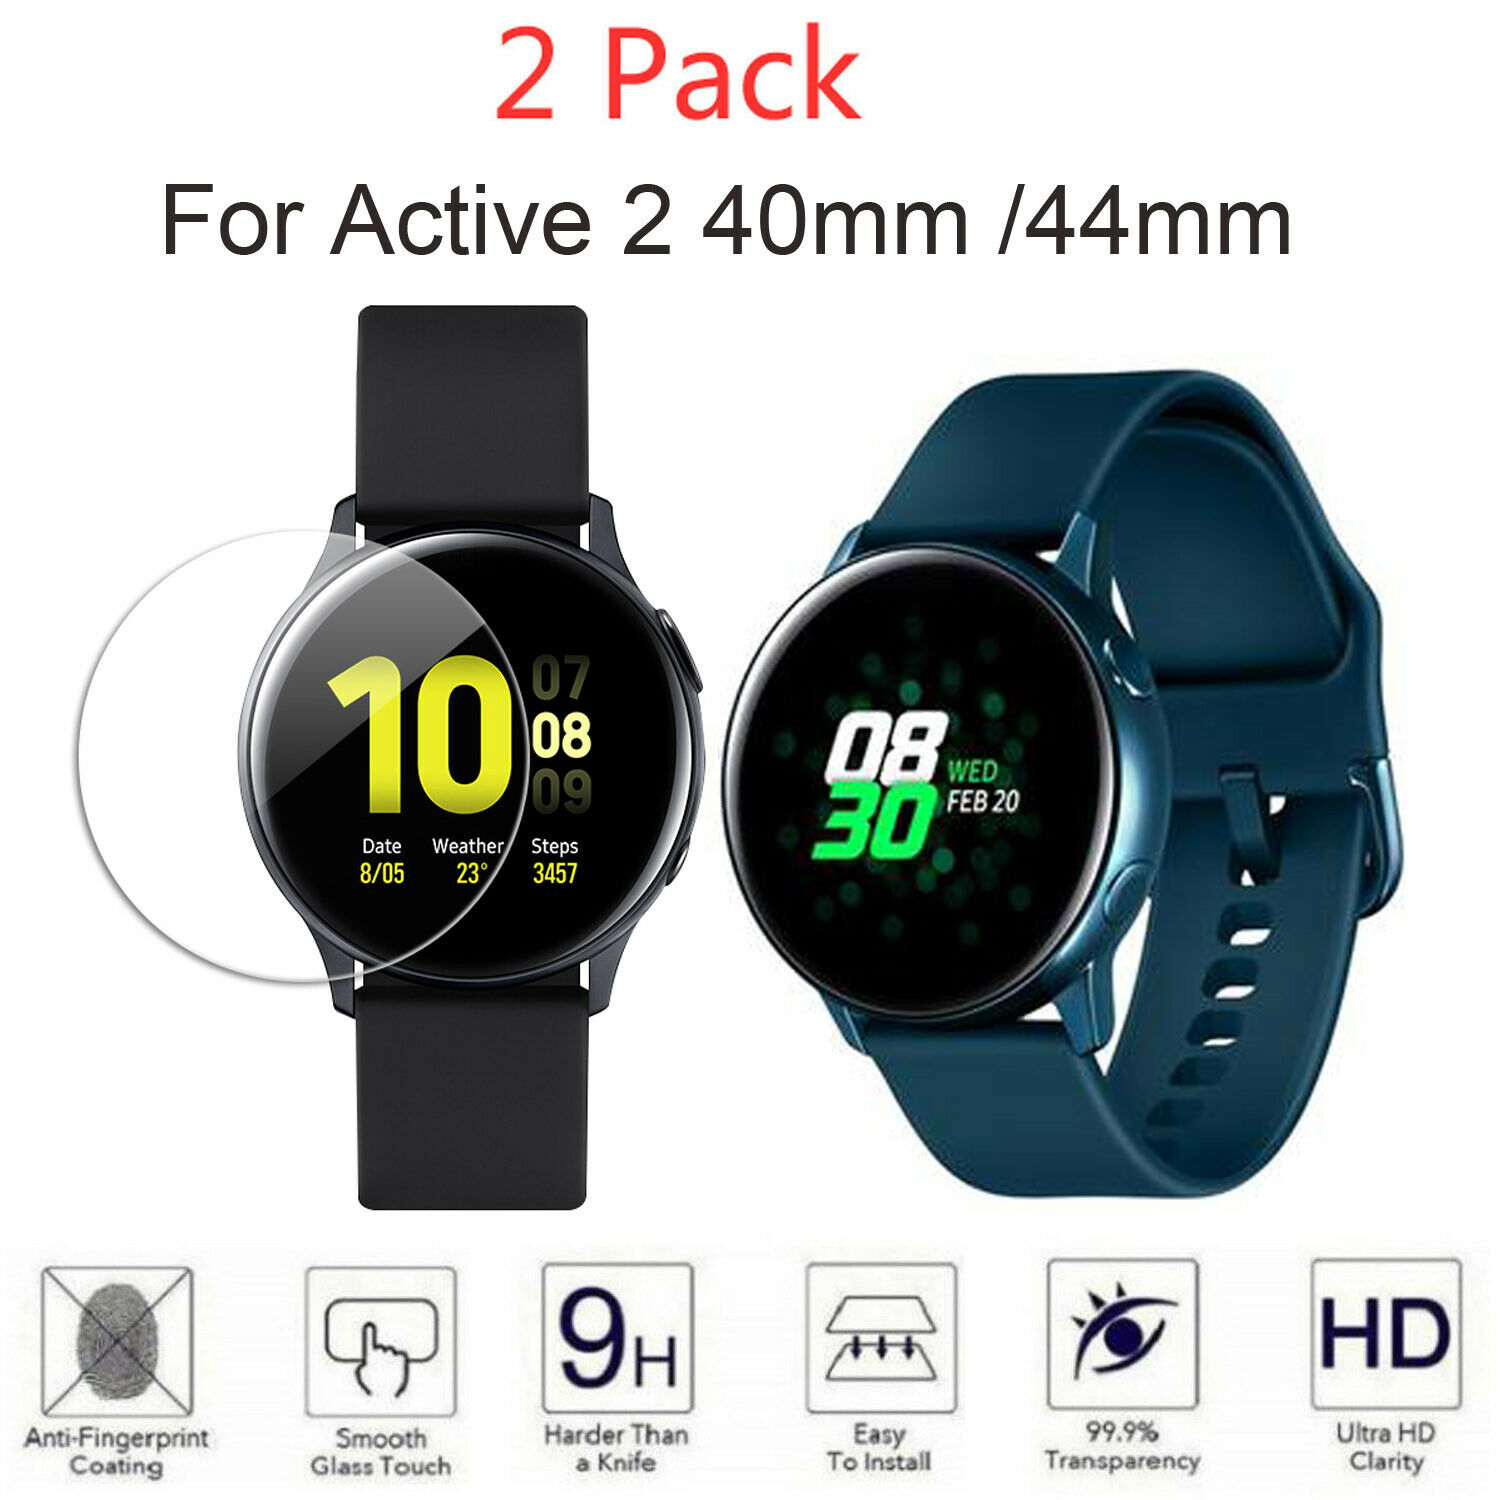 Active2 Tempered Glass Screen Protector Film For Samsung Galaxy Watch Active 2 40mm 44mm Screen Protection Film